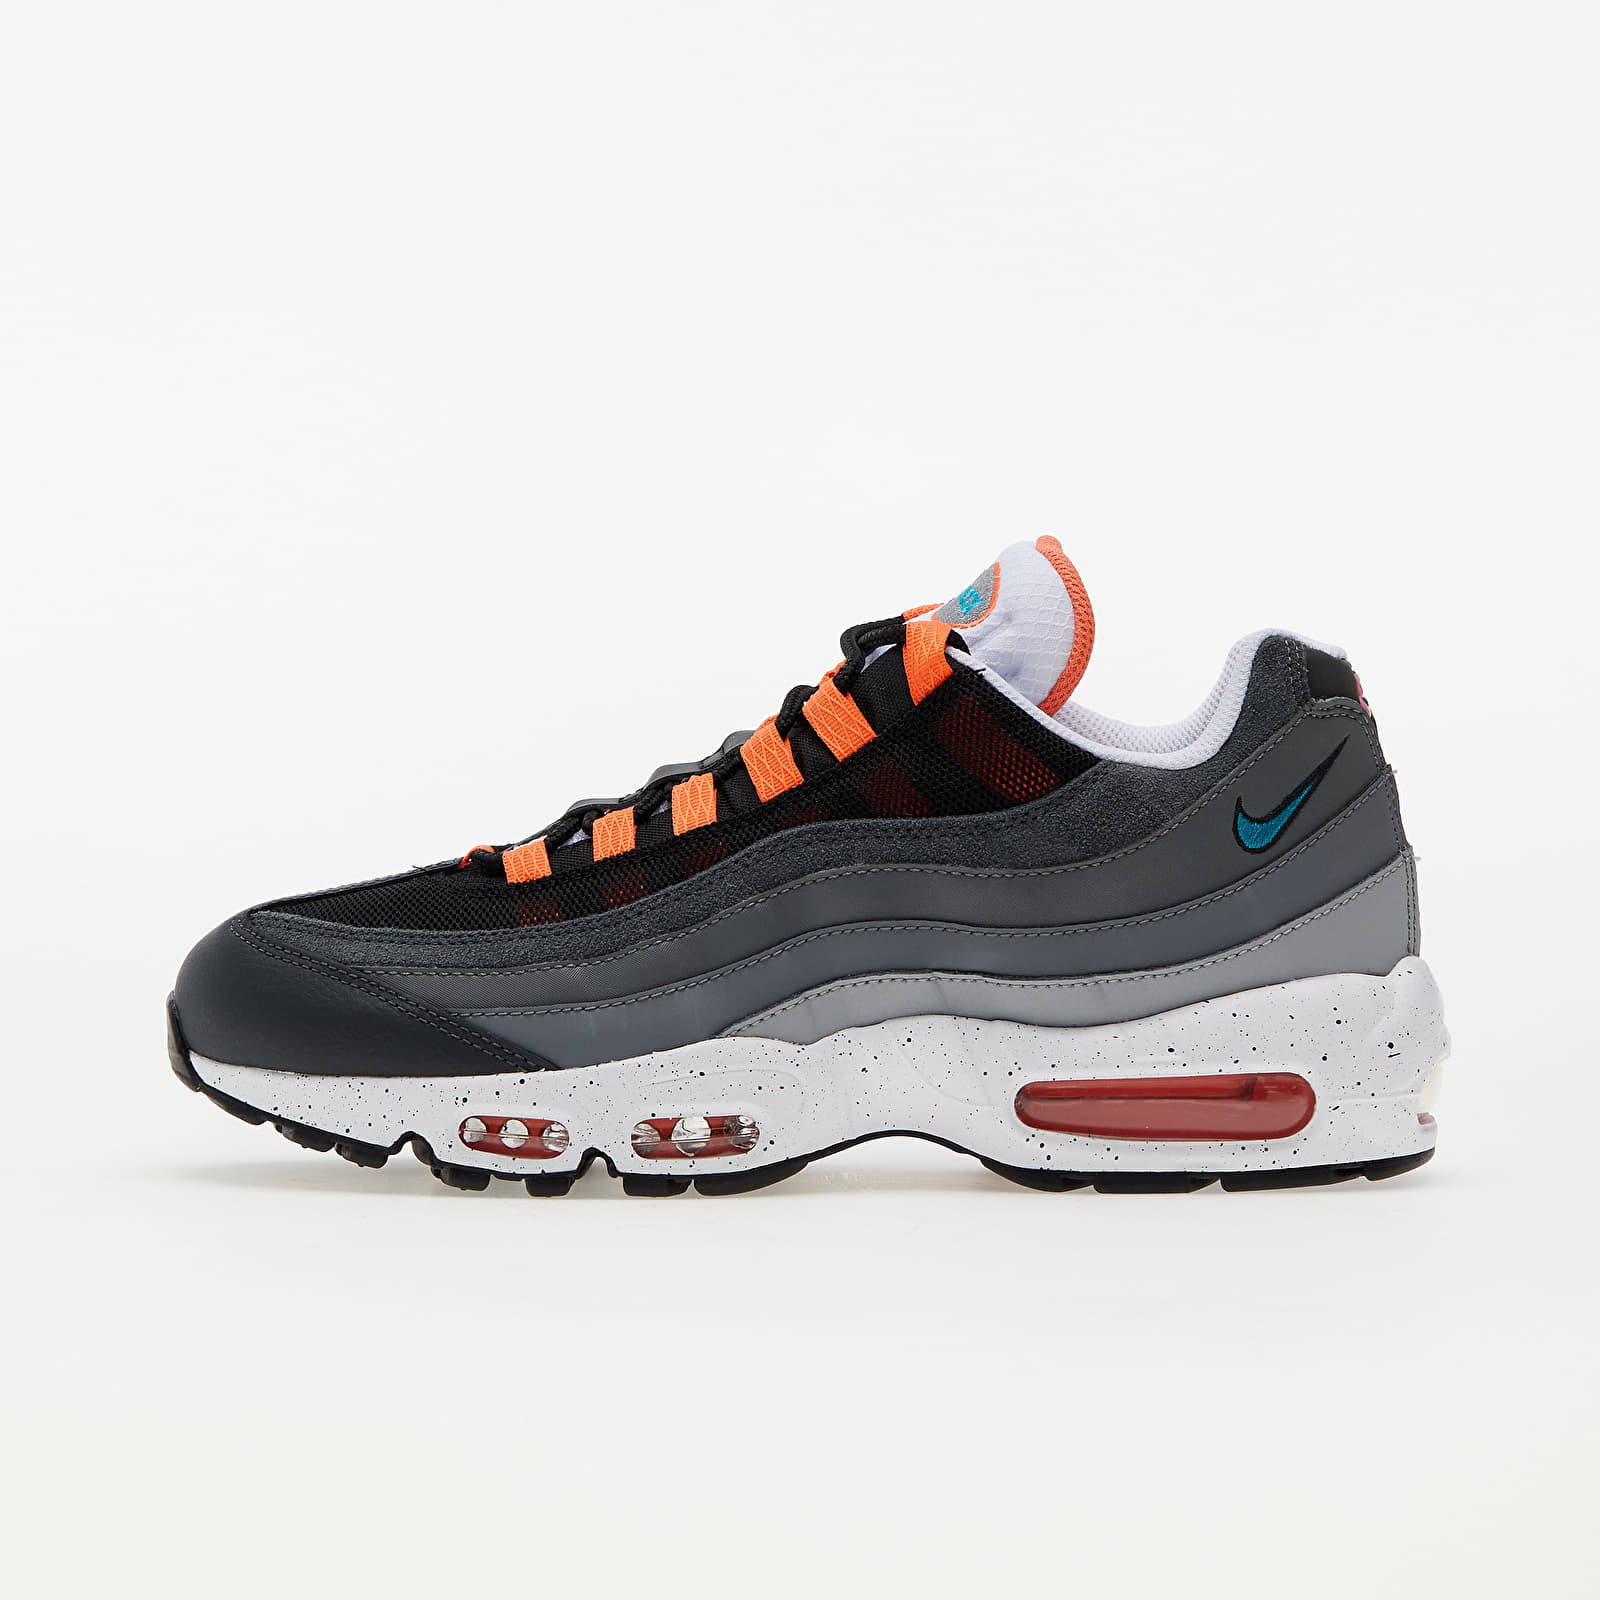 Nike Air Max 95 Black/ Aquamarine-Turf Orange-White EUR 45